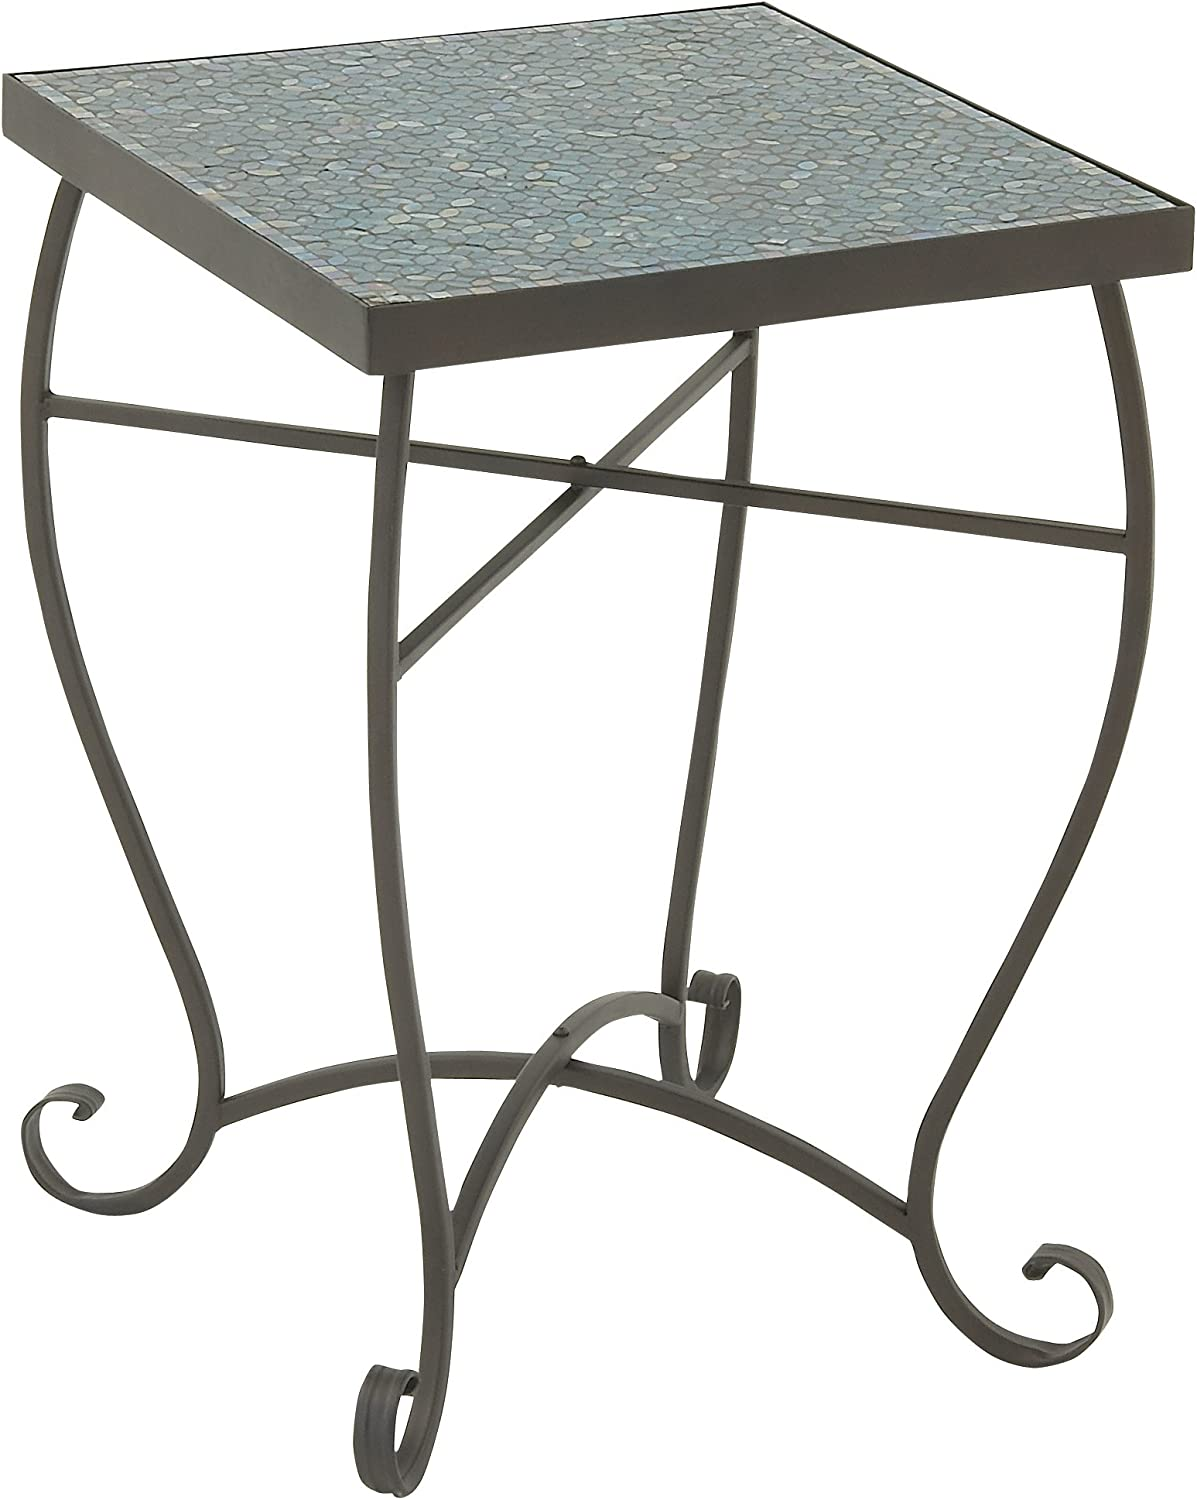 Deco 79 23987 Metal Mosaic Accent Table, 16  x 23 , Turquoise